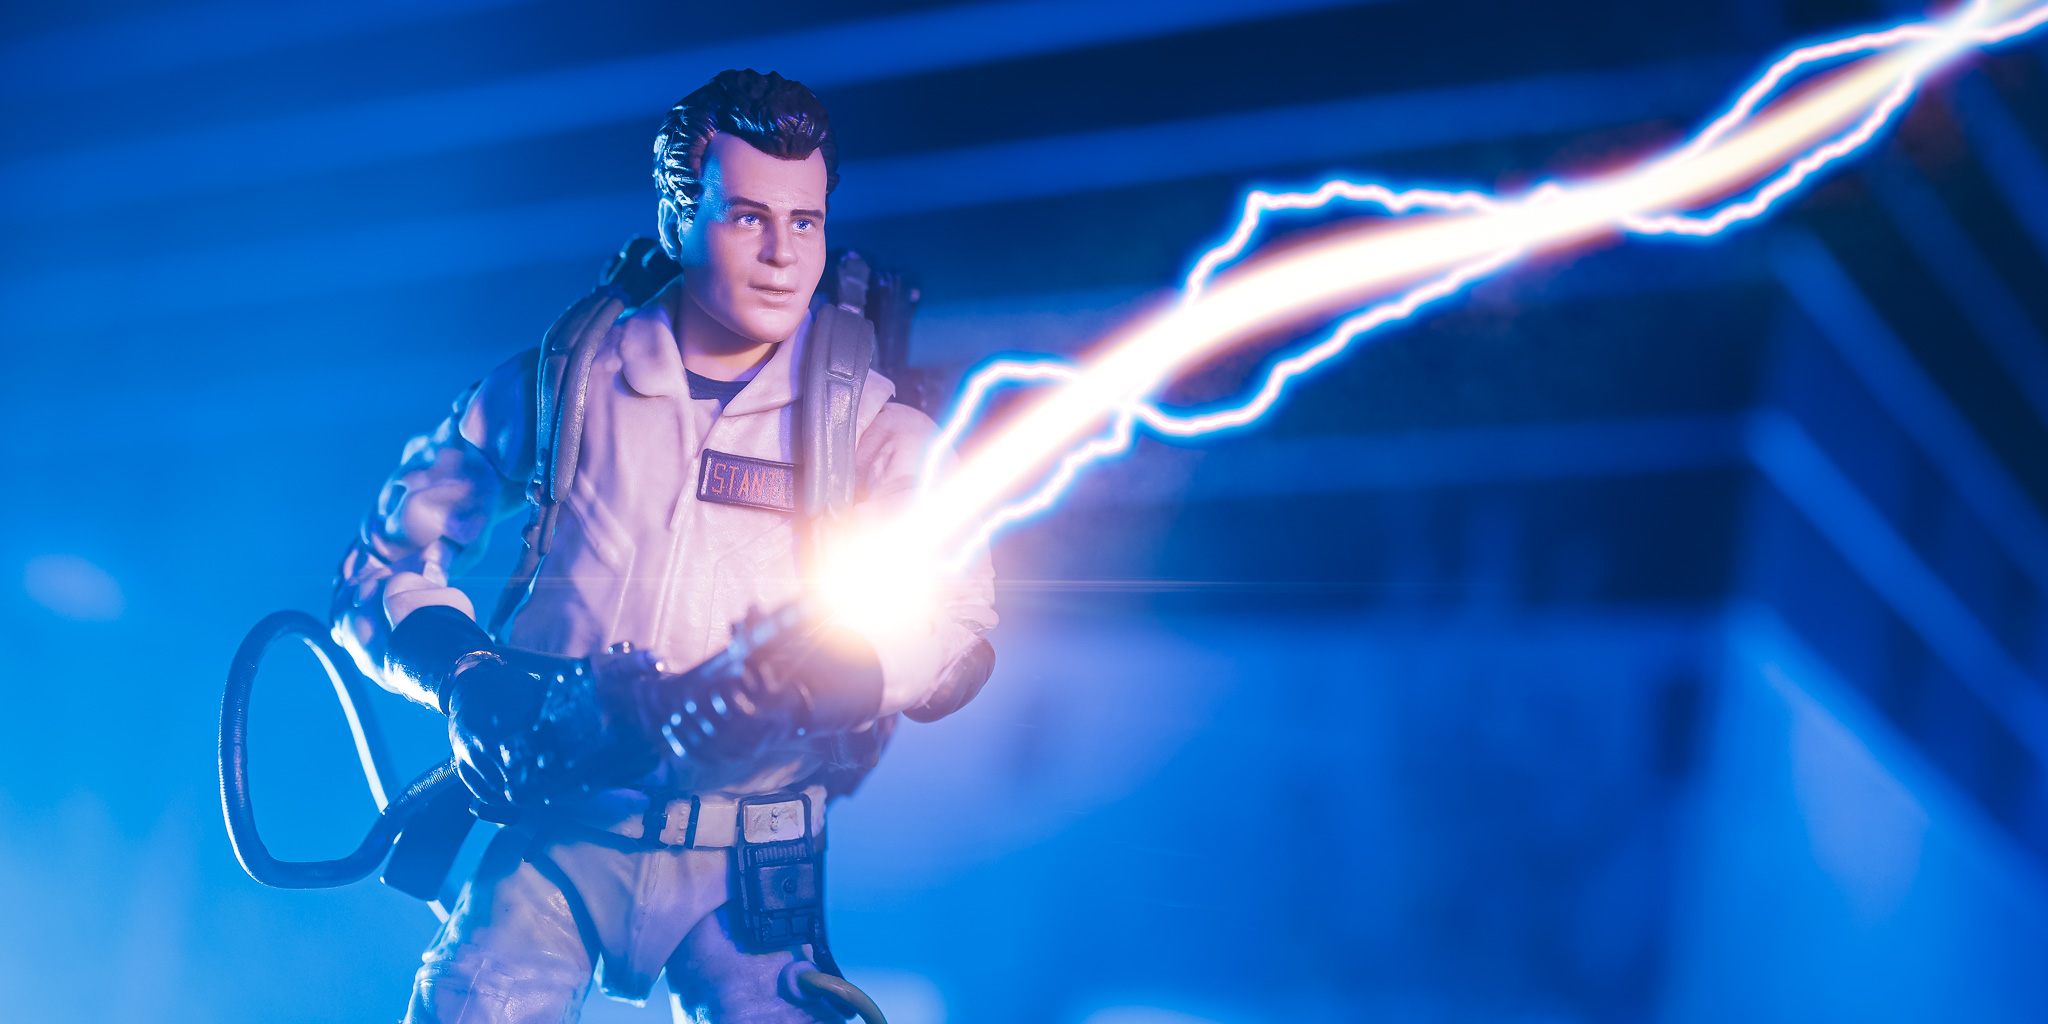 Ghostbusters with Optics lighting effects